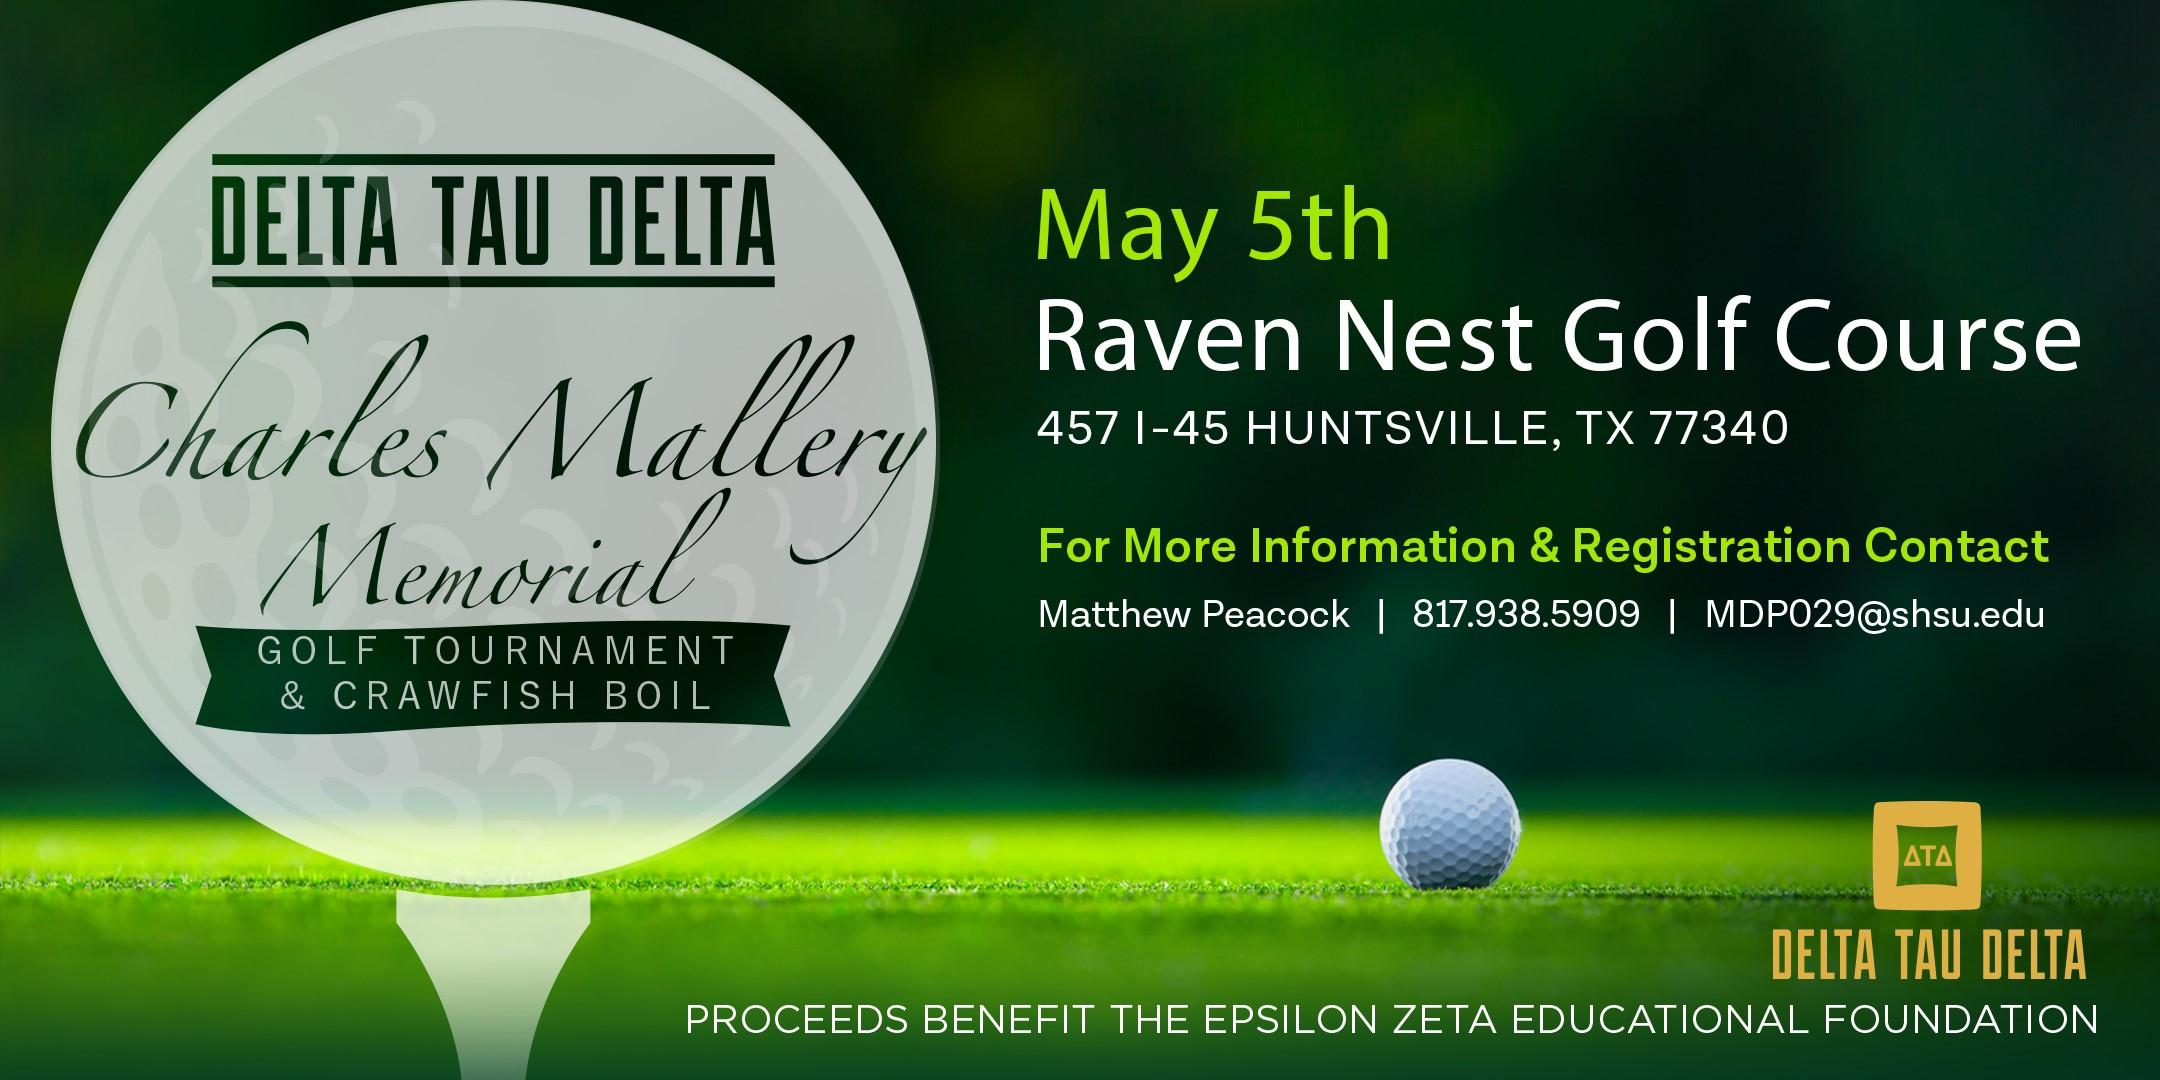 Charles Mallery Memorial Golf Tournament & Crawfish Boil